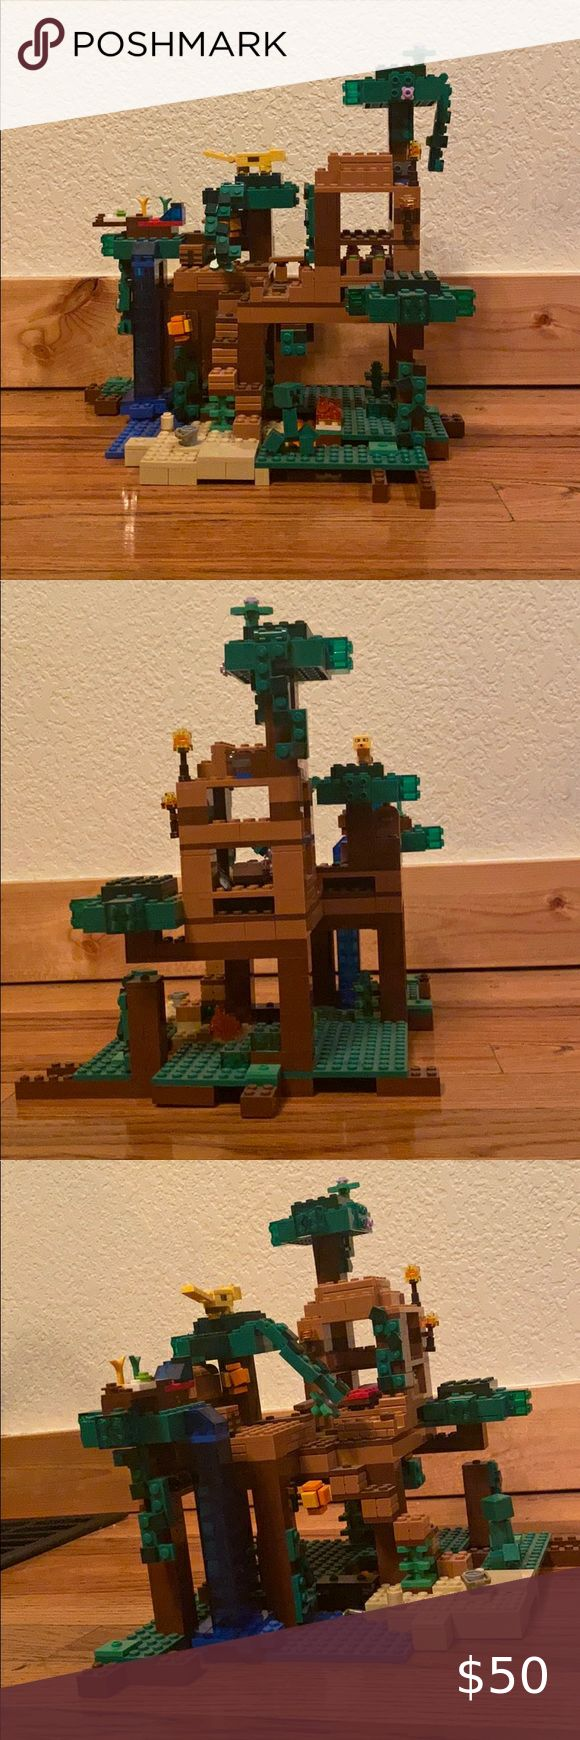 Minecraft LEGO jungle tree house Set number 21125 in 2020